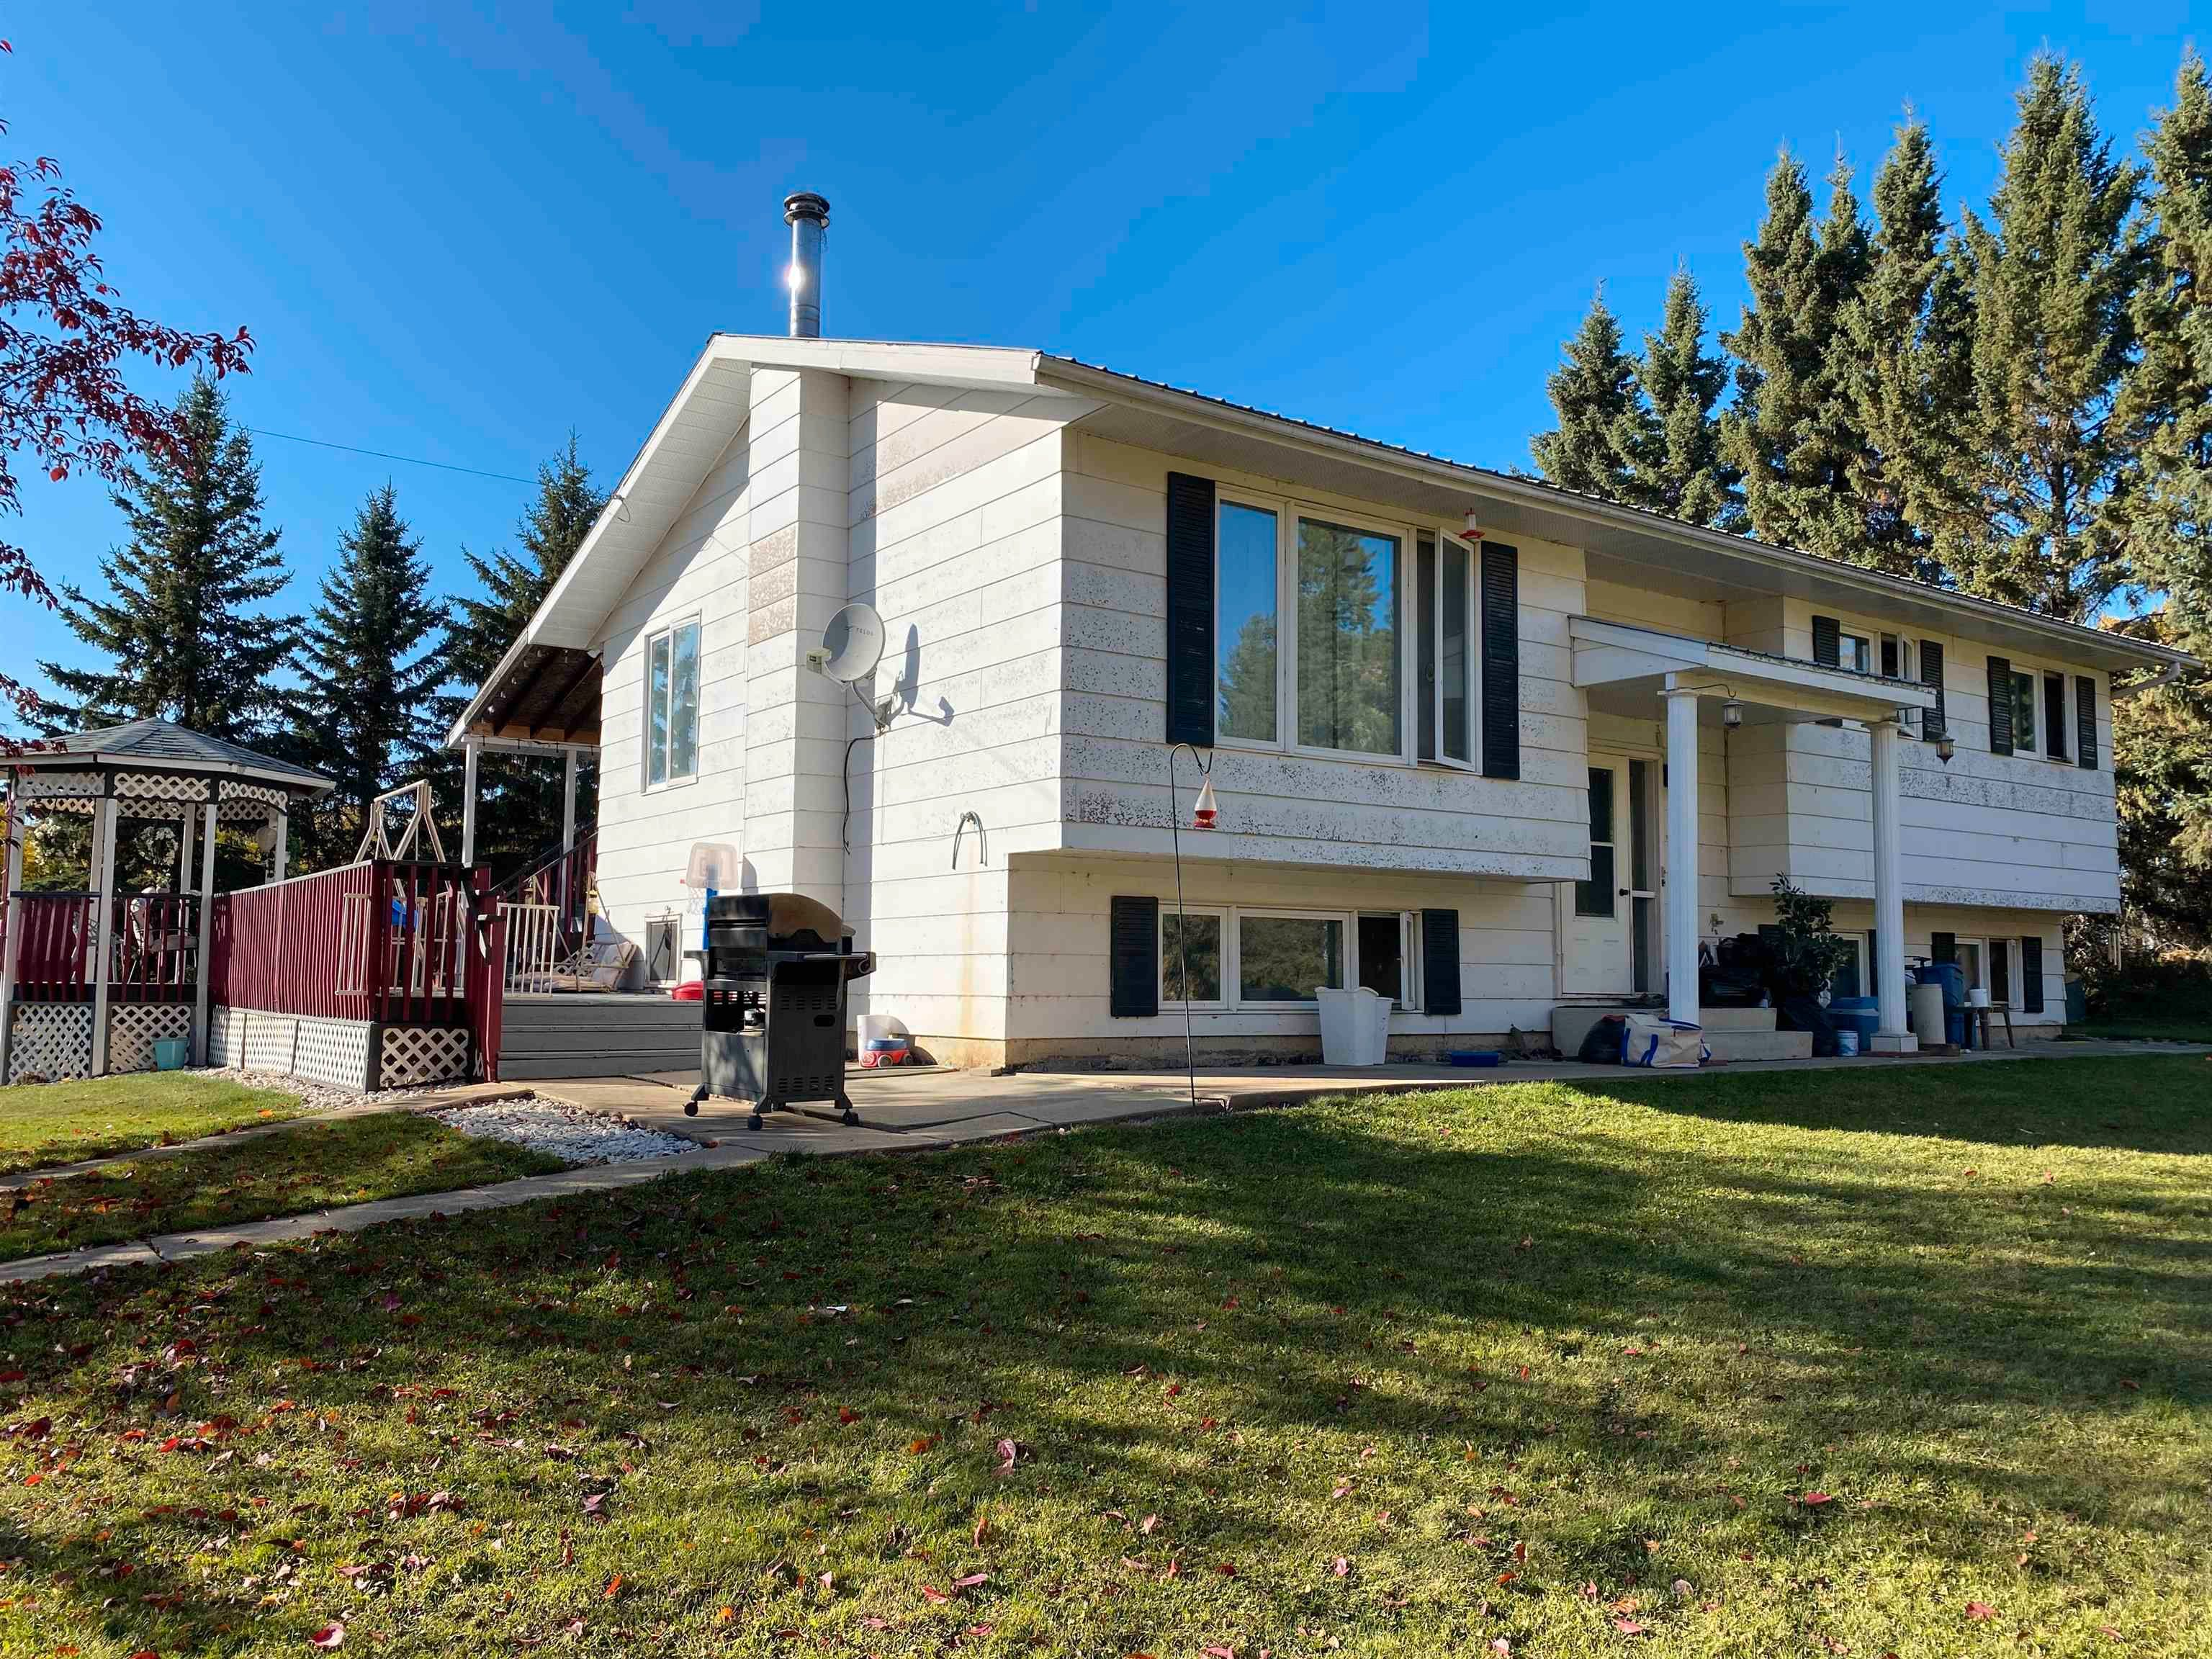 Main Photo: 450080 HWY 795: Rural Wetaskiwin County House for sale : MLS®# E4264794